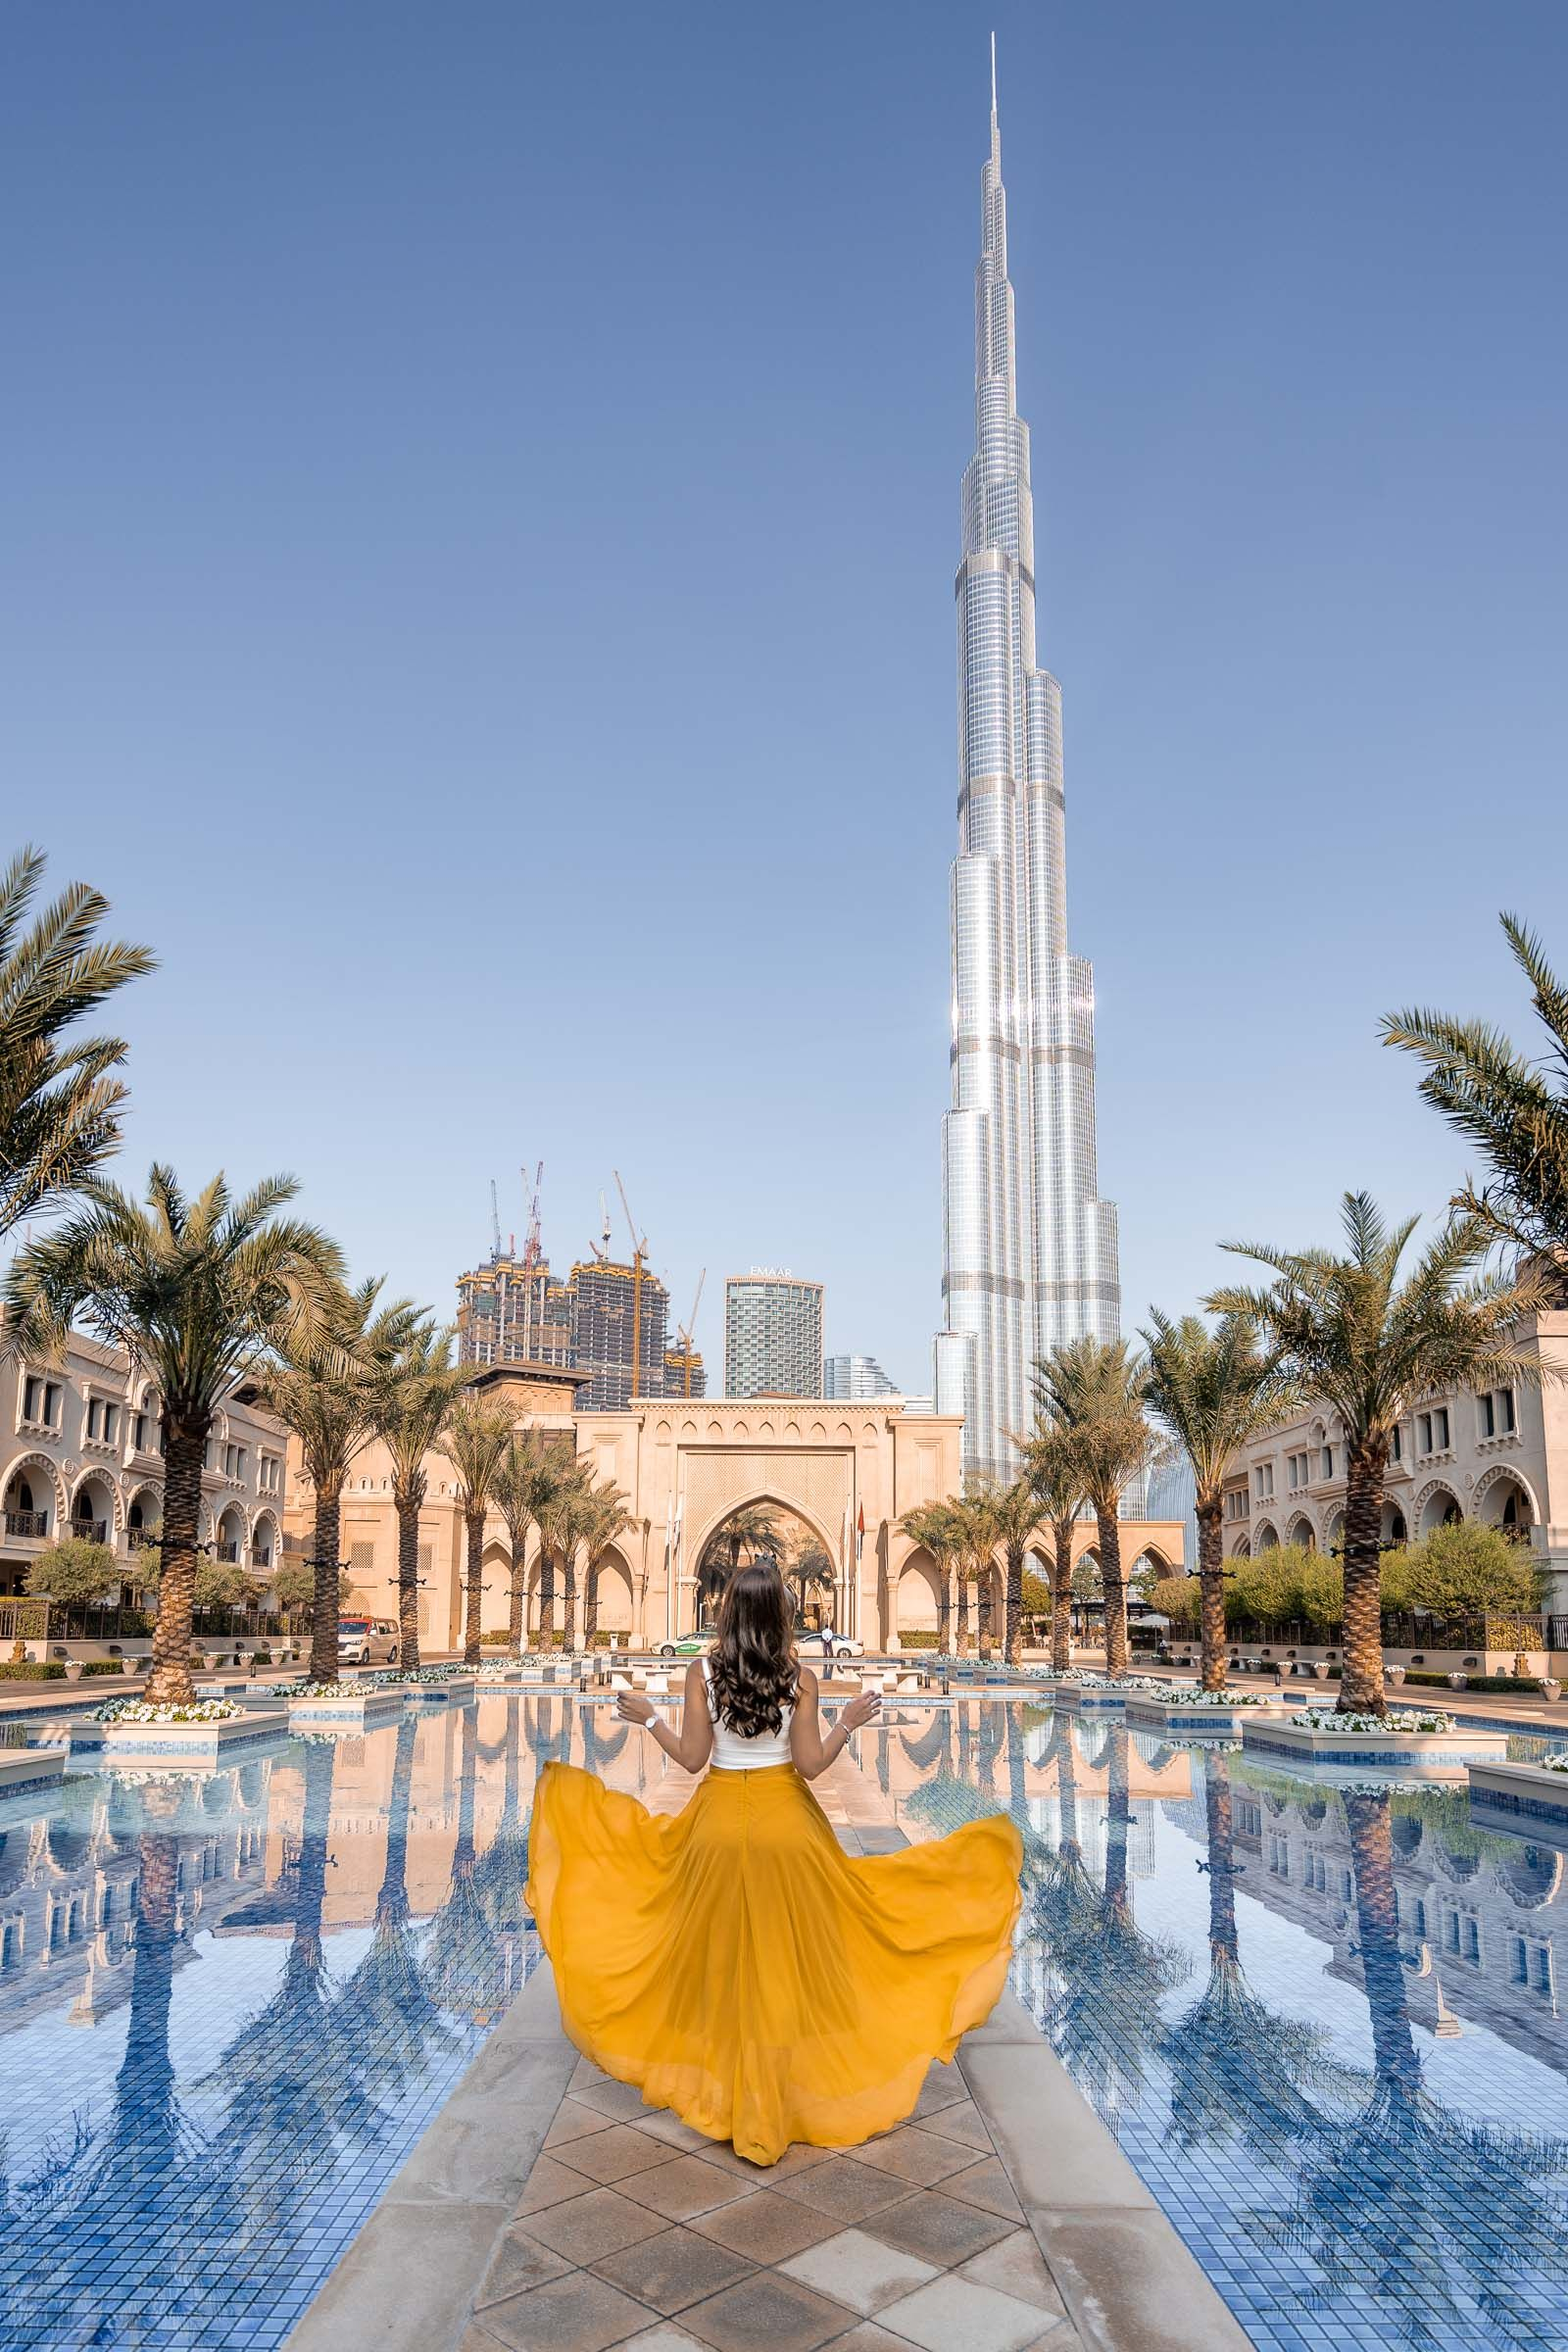 Looking for the most beautiful Instagrammable places in Dubai? Check out this guide to find the best photography spots in Dubai with their exact locations! #dubai #middleeast #instagrammable #photography #dubaitravel | Burj Khalifa | Burj al Arab | Dubai Miracle Garden | Dubai Instagram spots | Dubai top photography locations | Best places to take photos in Dubai | Dubai photography guide | Most beautiful places in Dubai | Top things to do in Dubai | Best places to visit in Dubai | Dubai ...